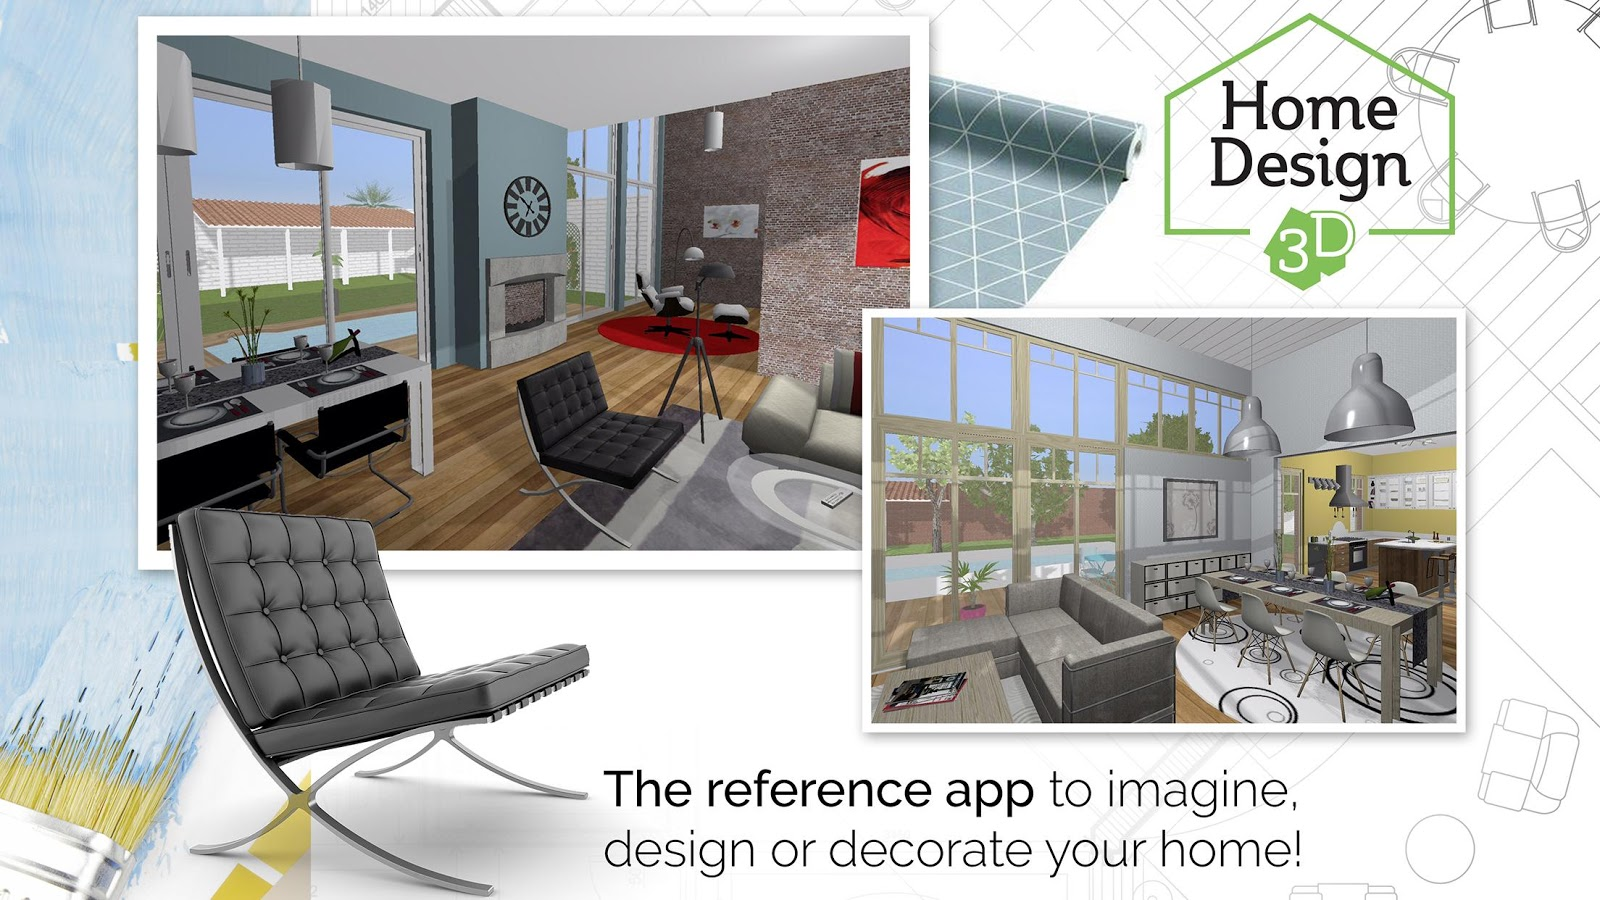 Home design 3d freemium android google play House interior design ideas app